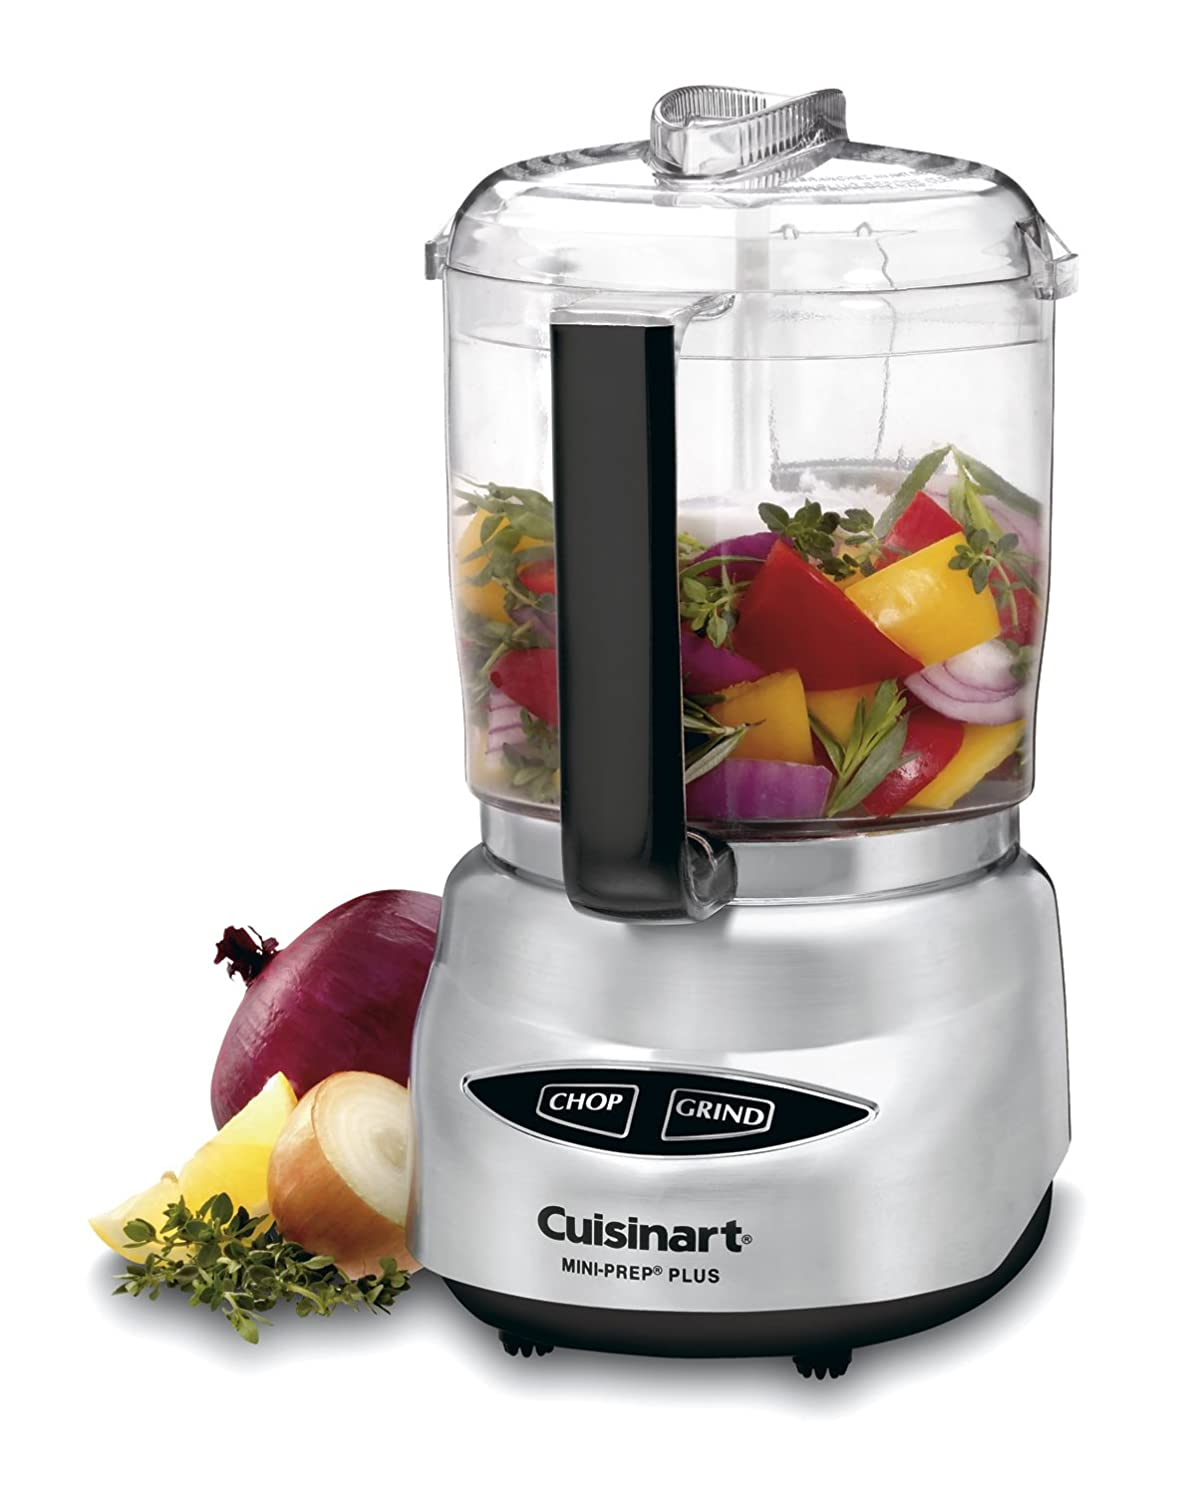 Cuisinart DLC-4CHB Mini-Prep Plus 4-Cup Food Processor